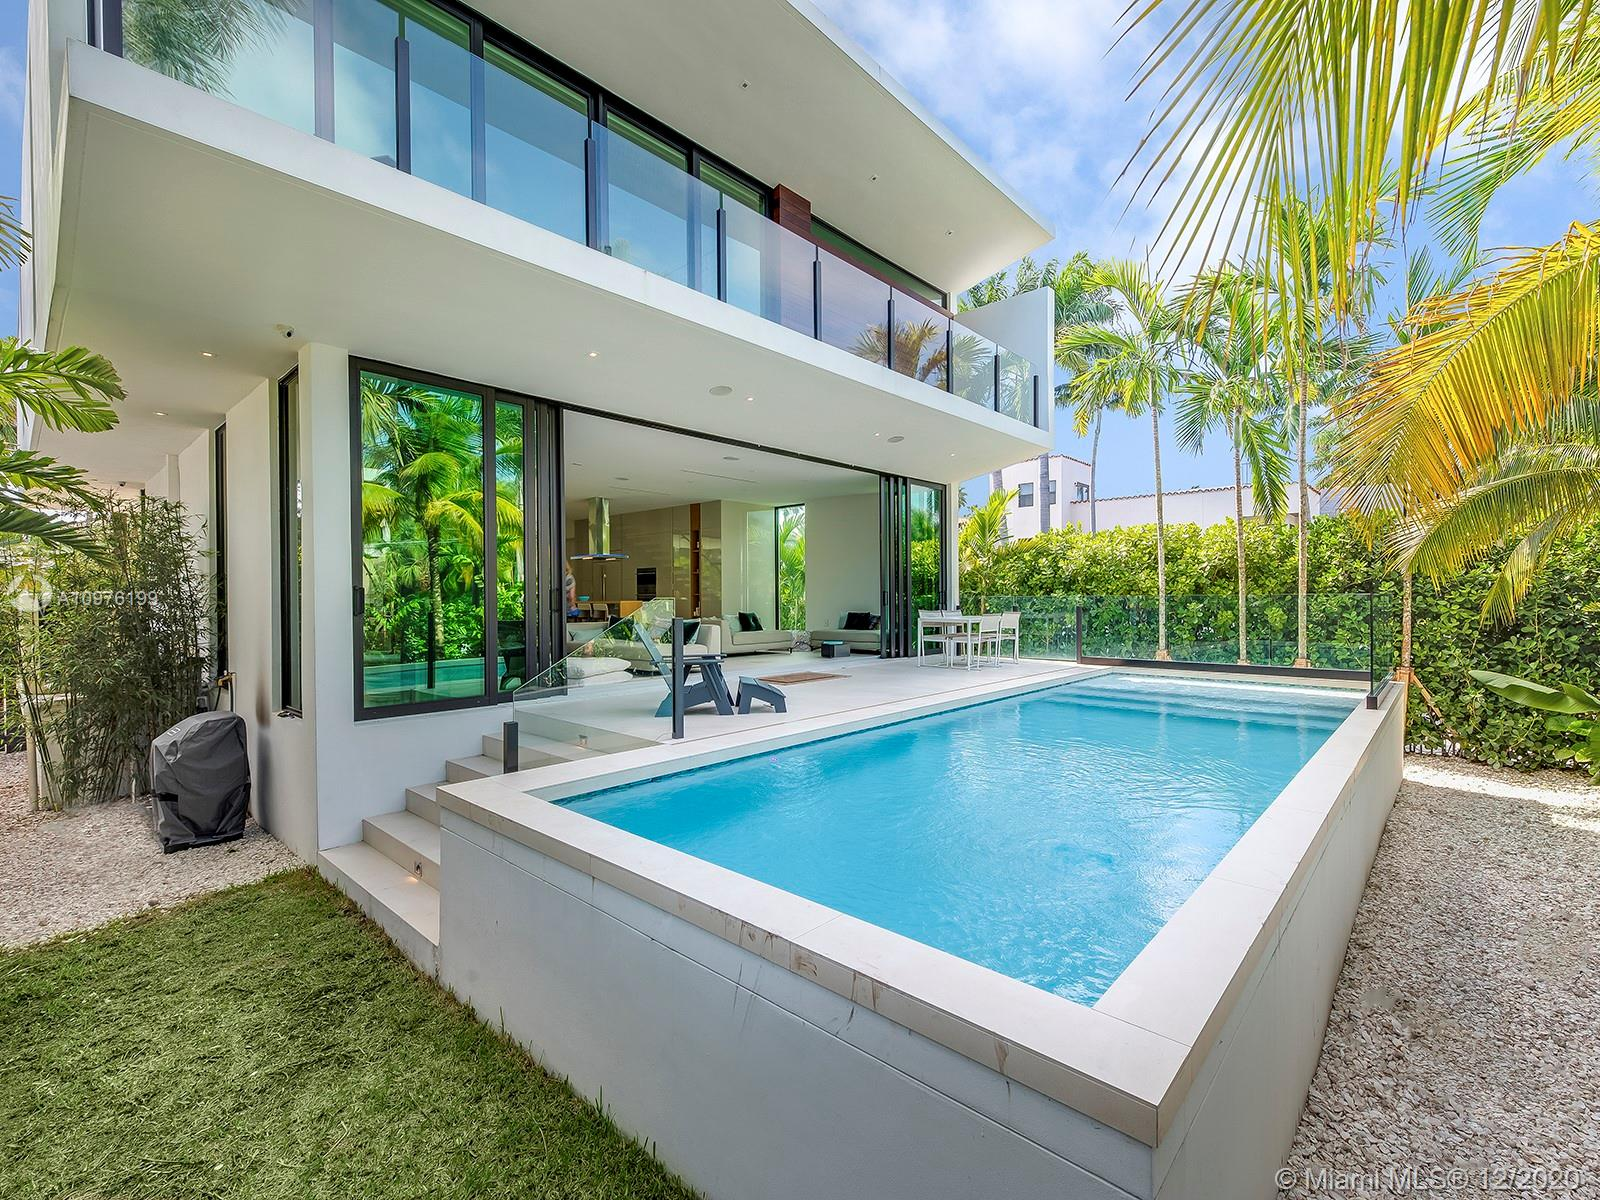 247 Palm Ave Luxury Real Estate